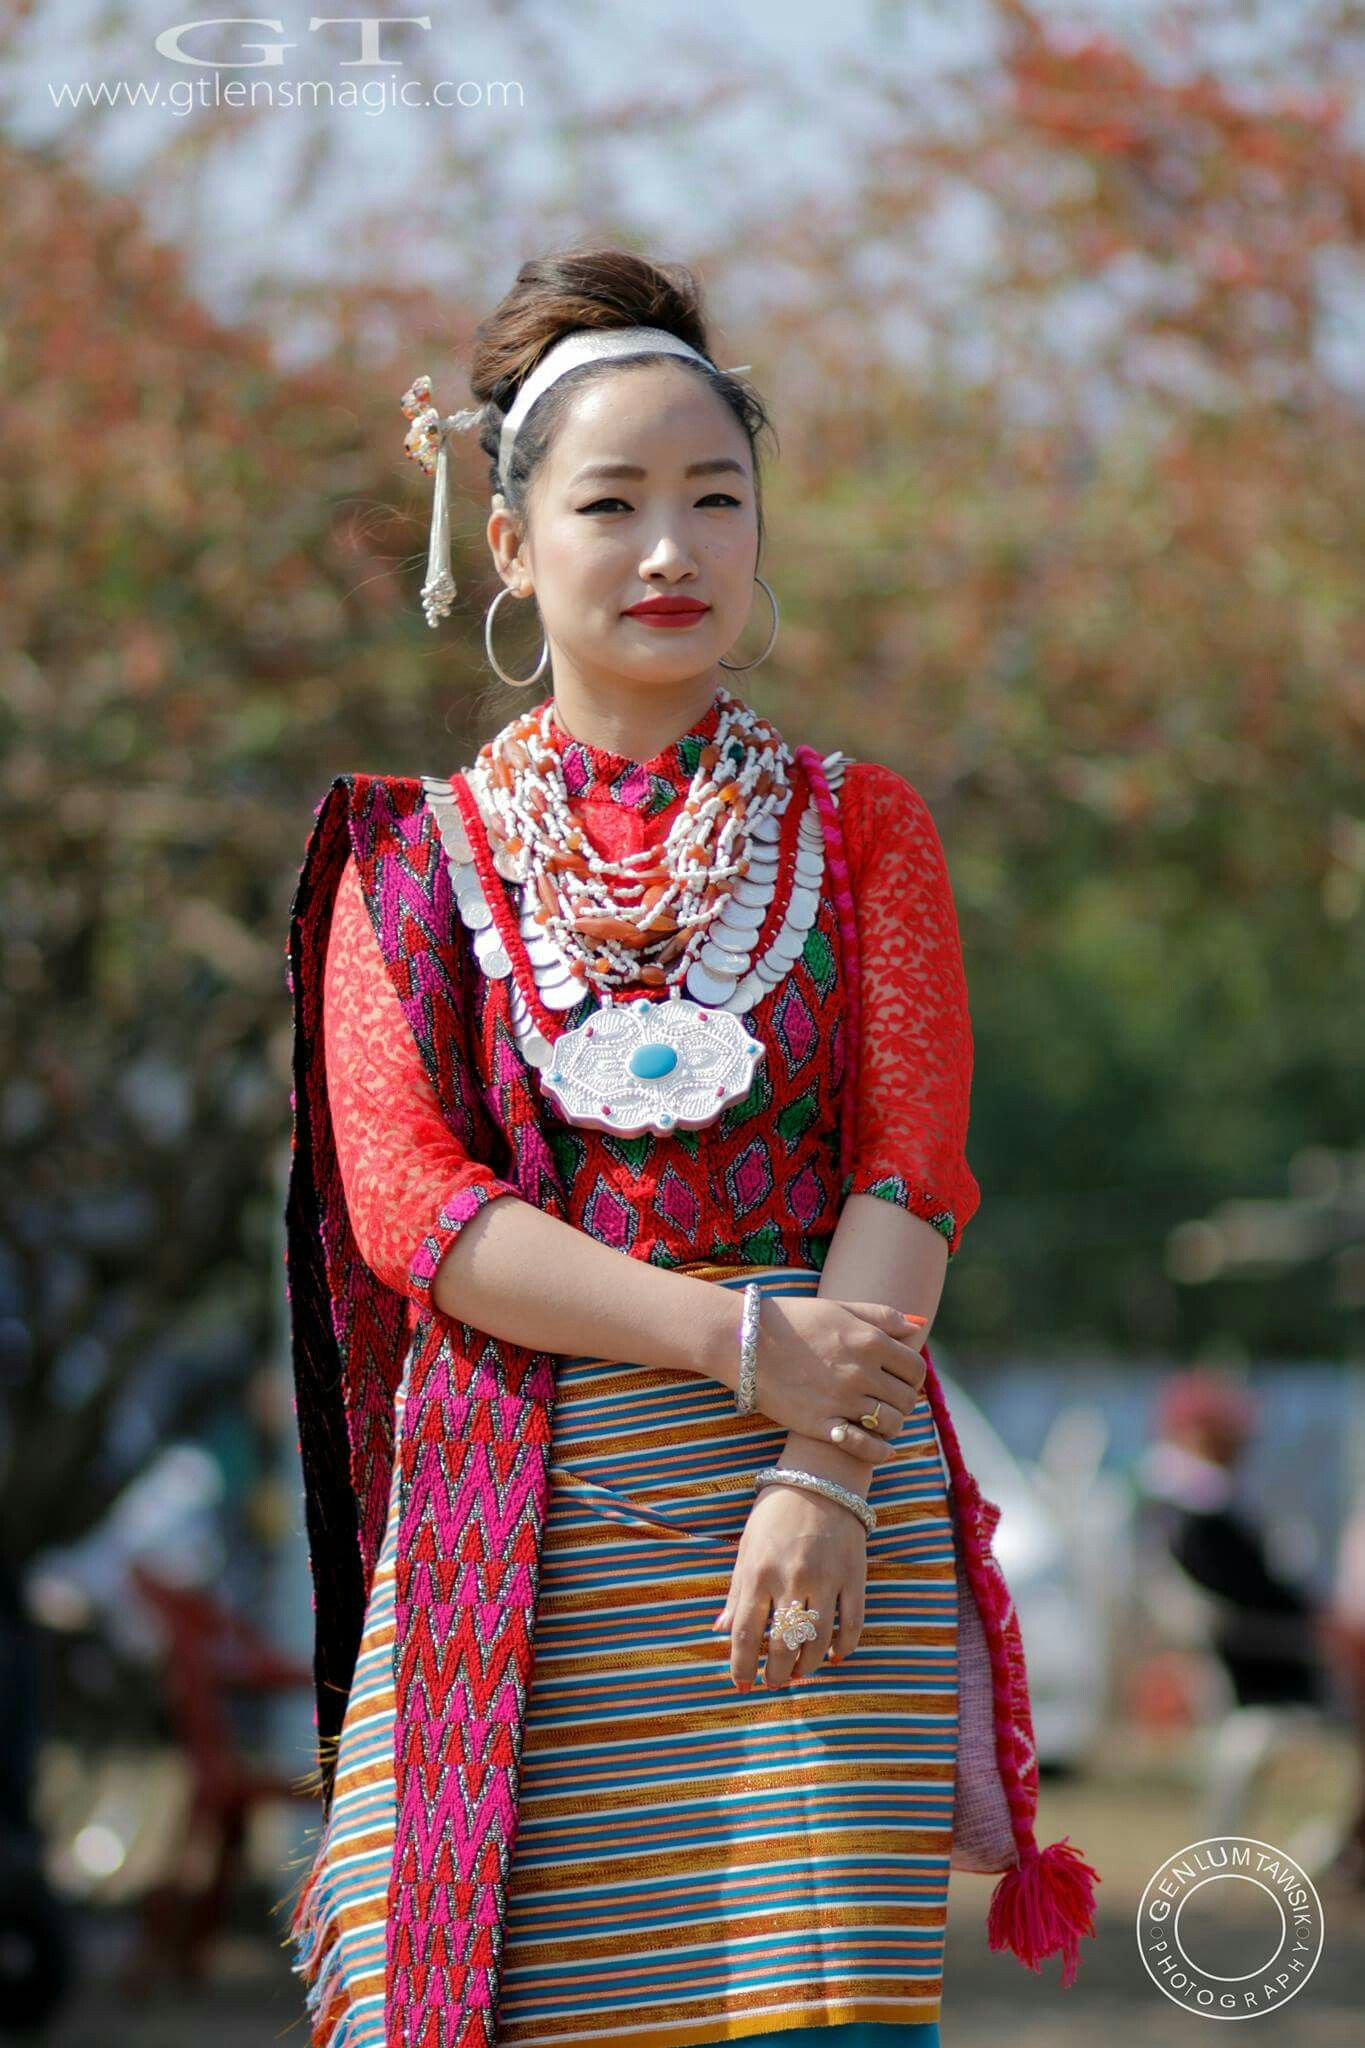 bf32202533 Pc: Genlum Tawsik #northeastyle  #stayfashionablytraditional#arunachalpradesh #arunachalpradesh #mishmi